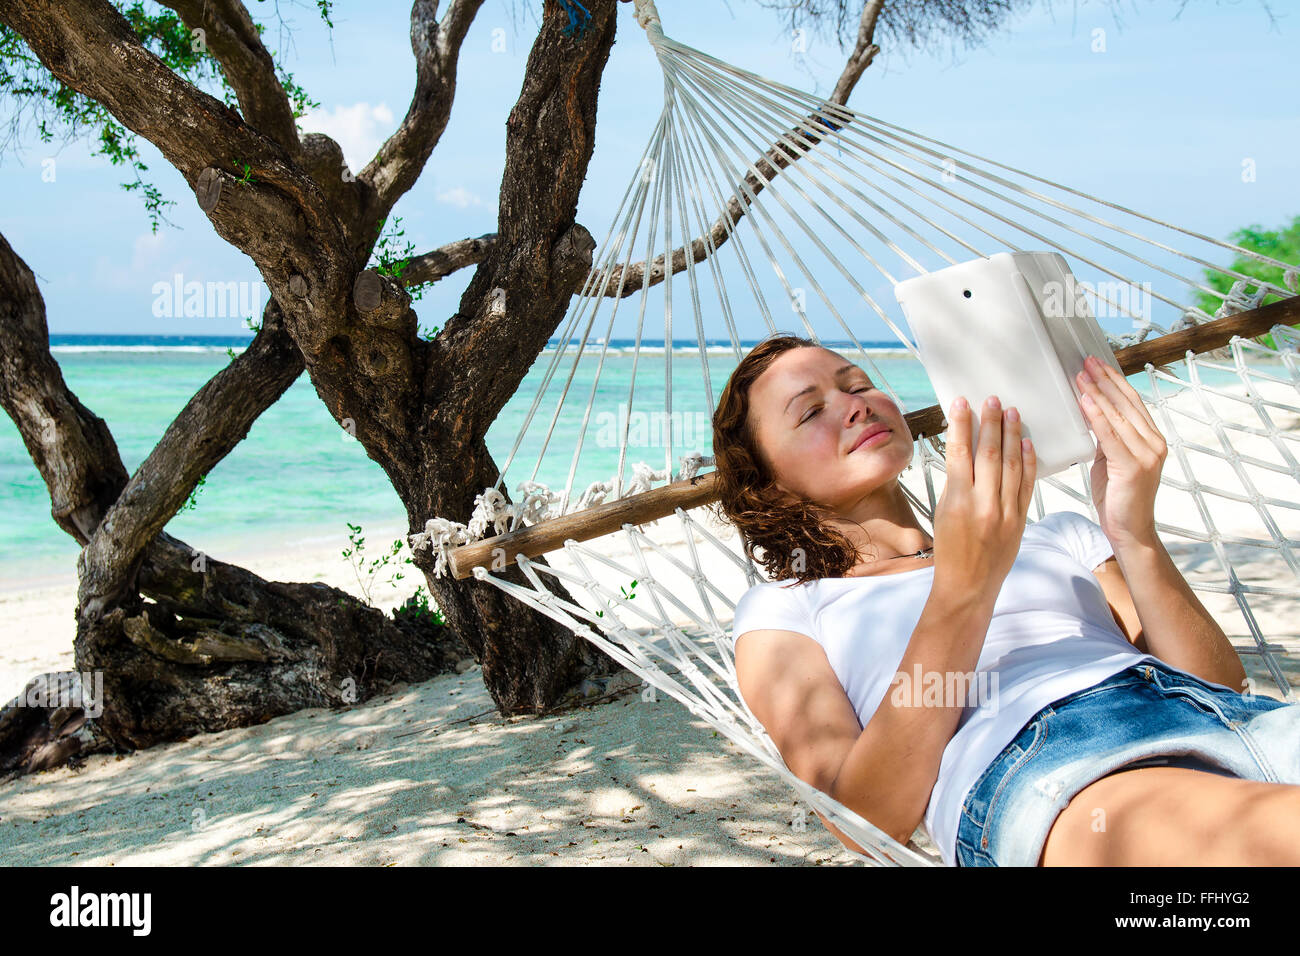 Woman in a hammock with laptop at the beach. Bali, Indonesia. Stock image. - Stock Image